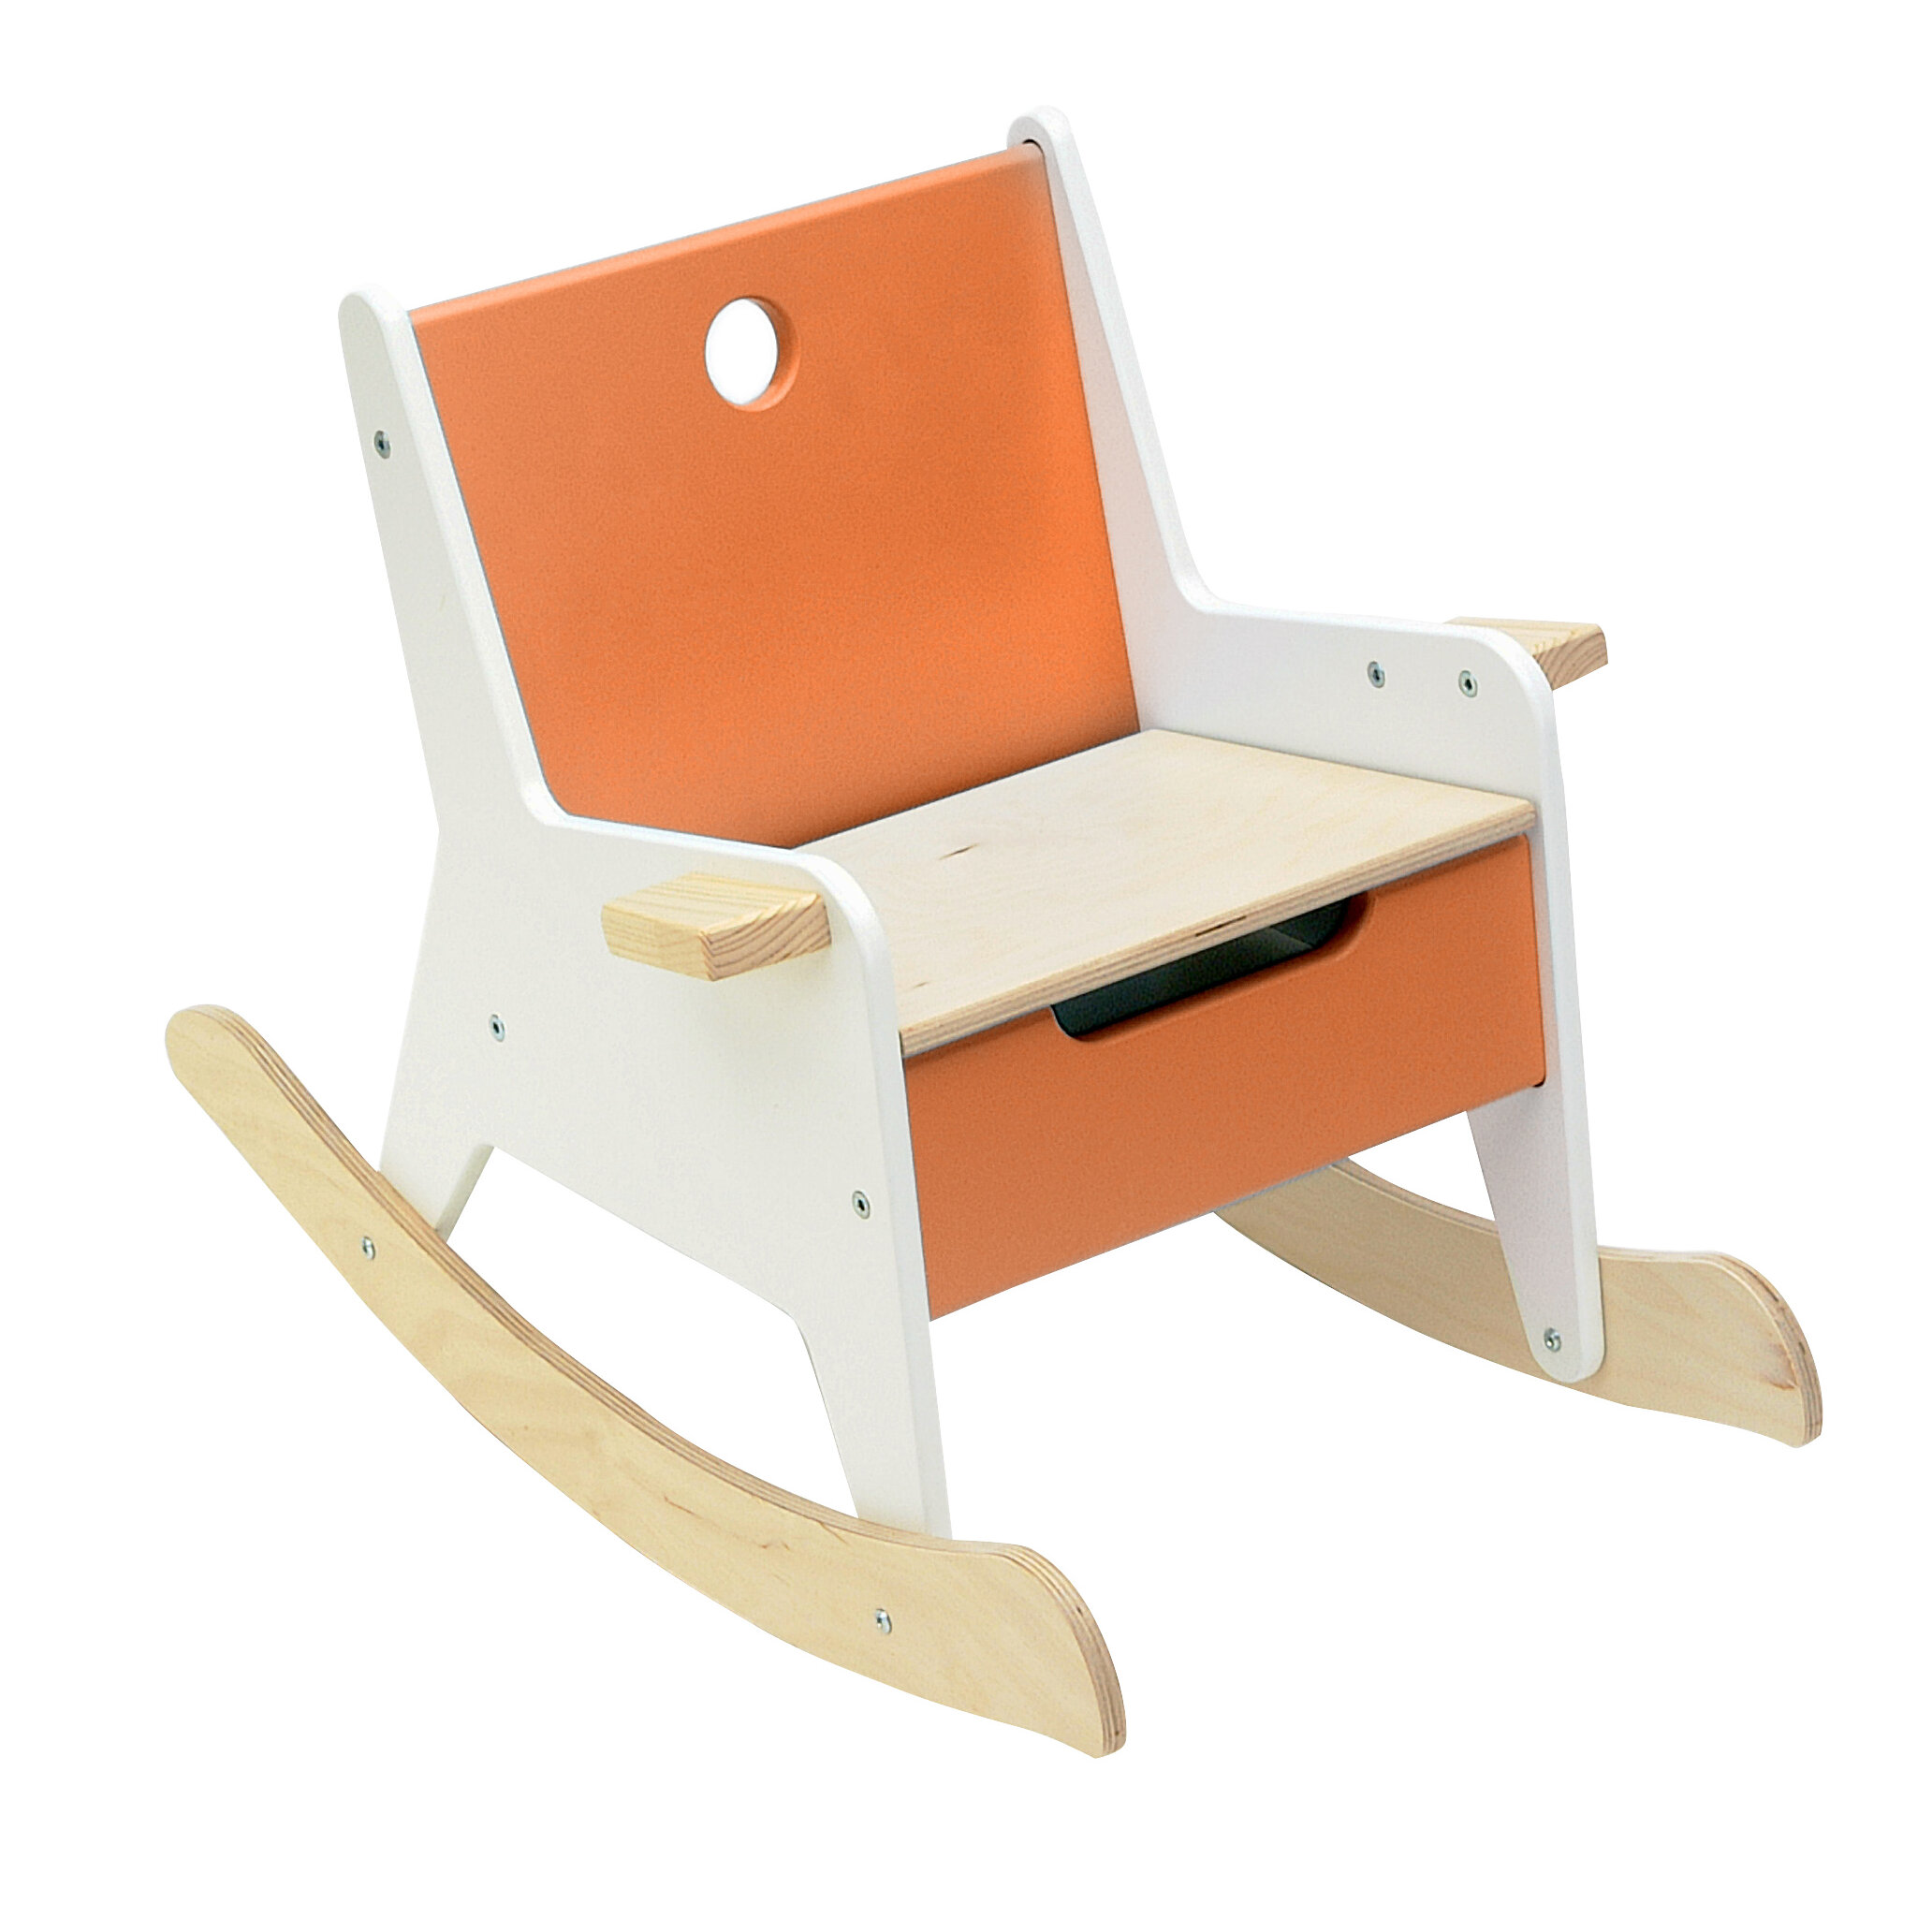 Admirable Rockabye Kids Rocking Chair With Storage Compartment Dailytribune Chair Design For Home Dailytribuneorg